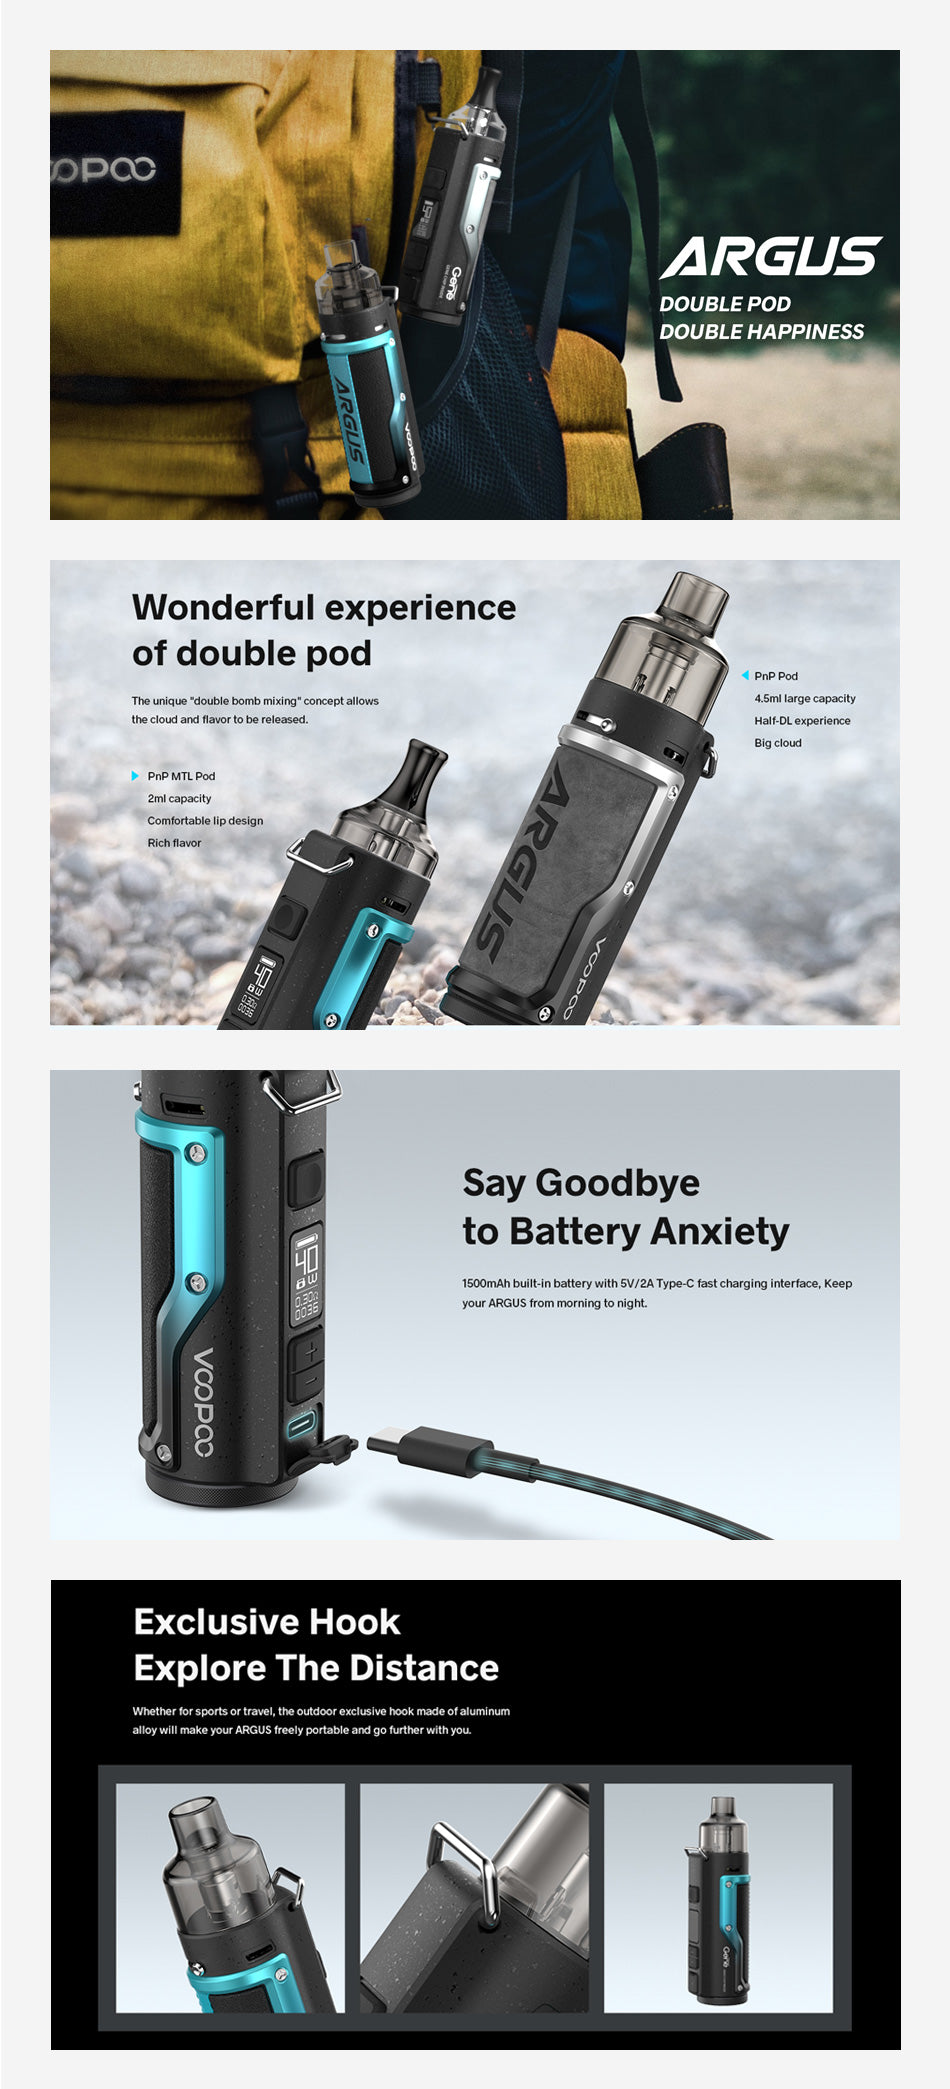 VOOPOO-Argus-1500mAh-Pod-System-Starter-Kit-With-Refillable-2ML-PnP MTL Pod & 4.5ML-PnP Pod